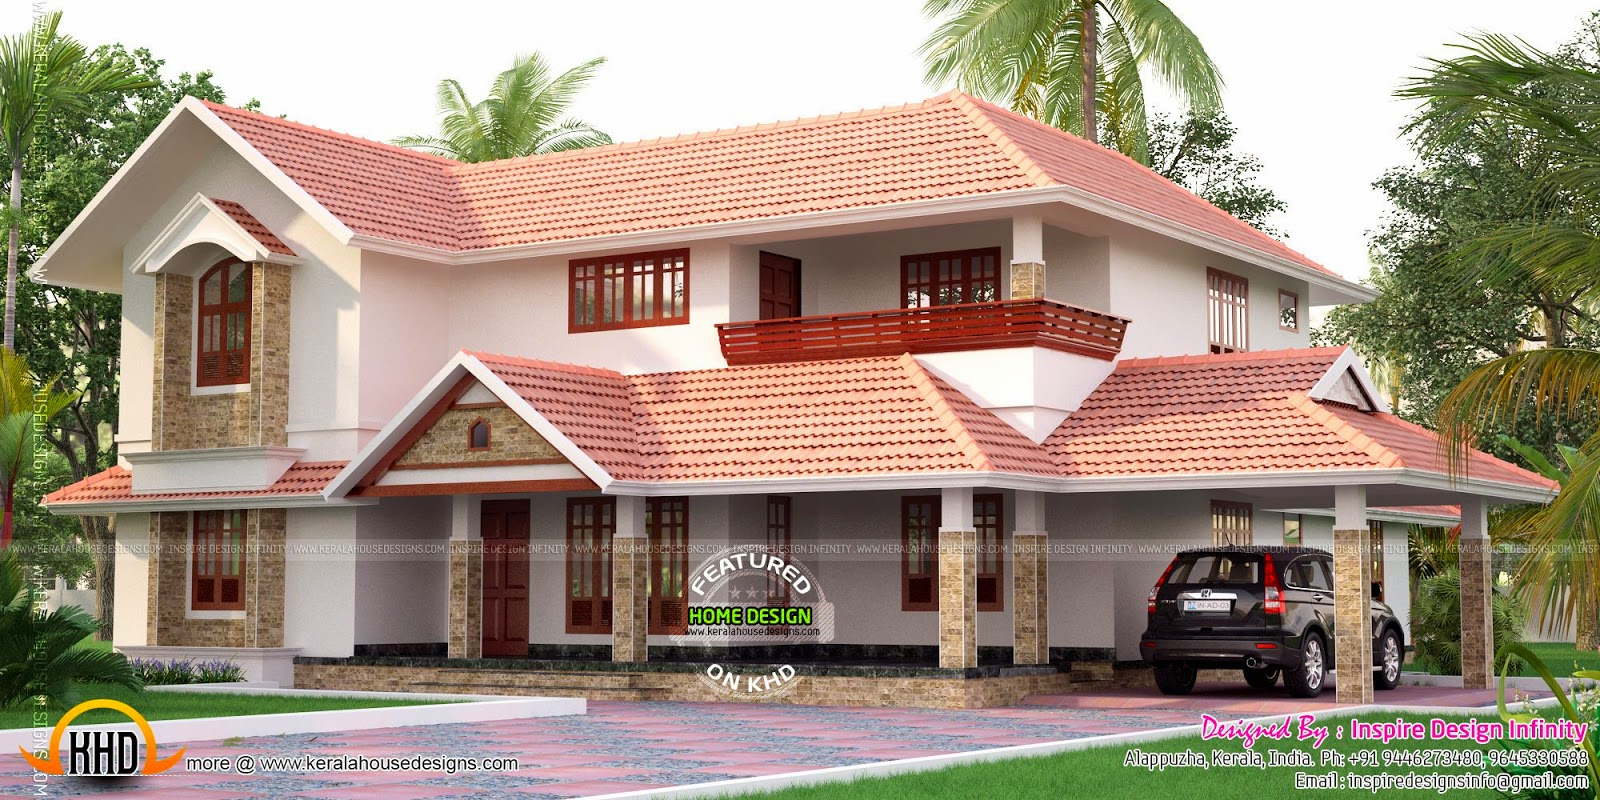 Kerala model luxury house exterior Home Design Simple